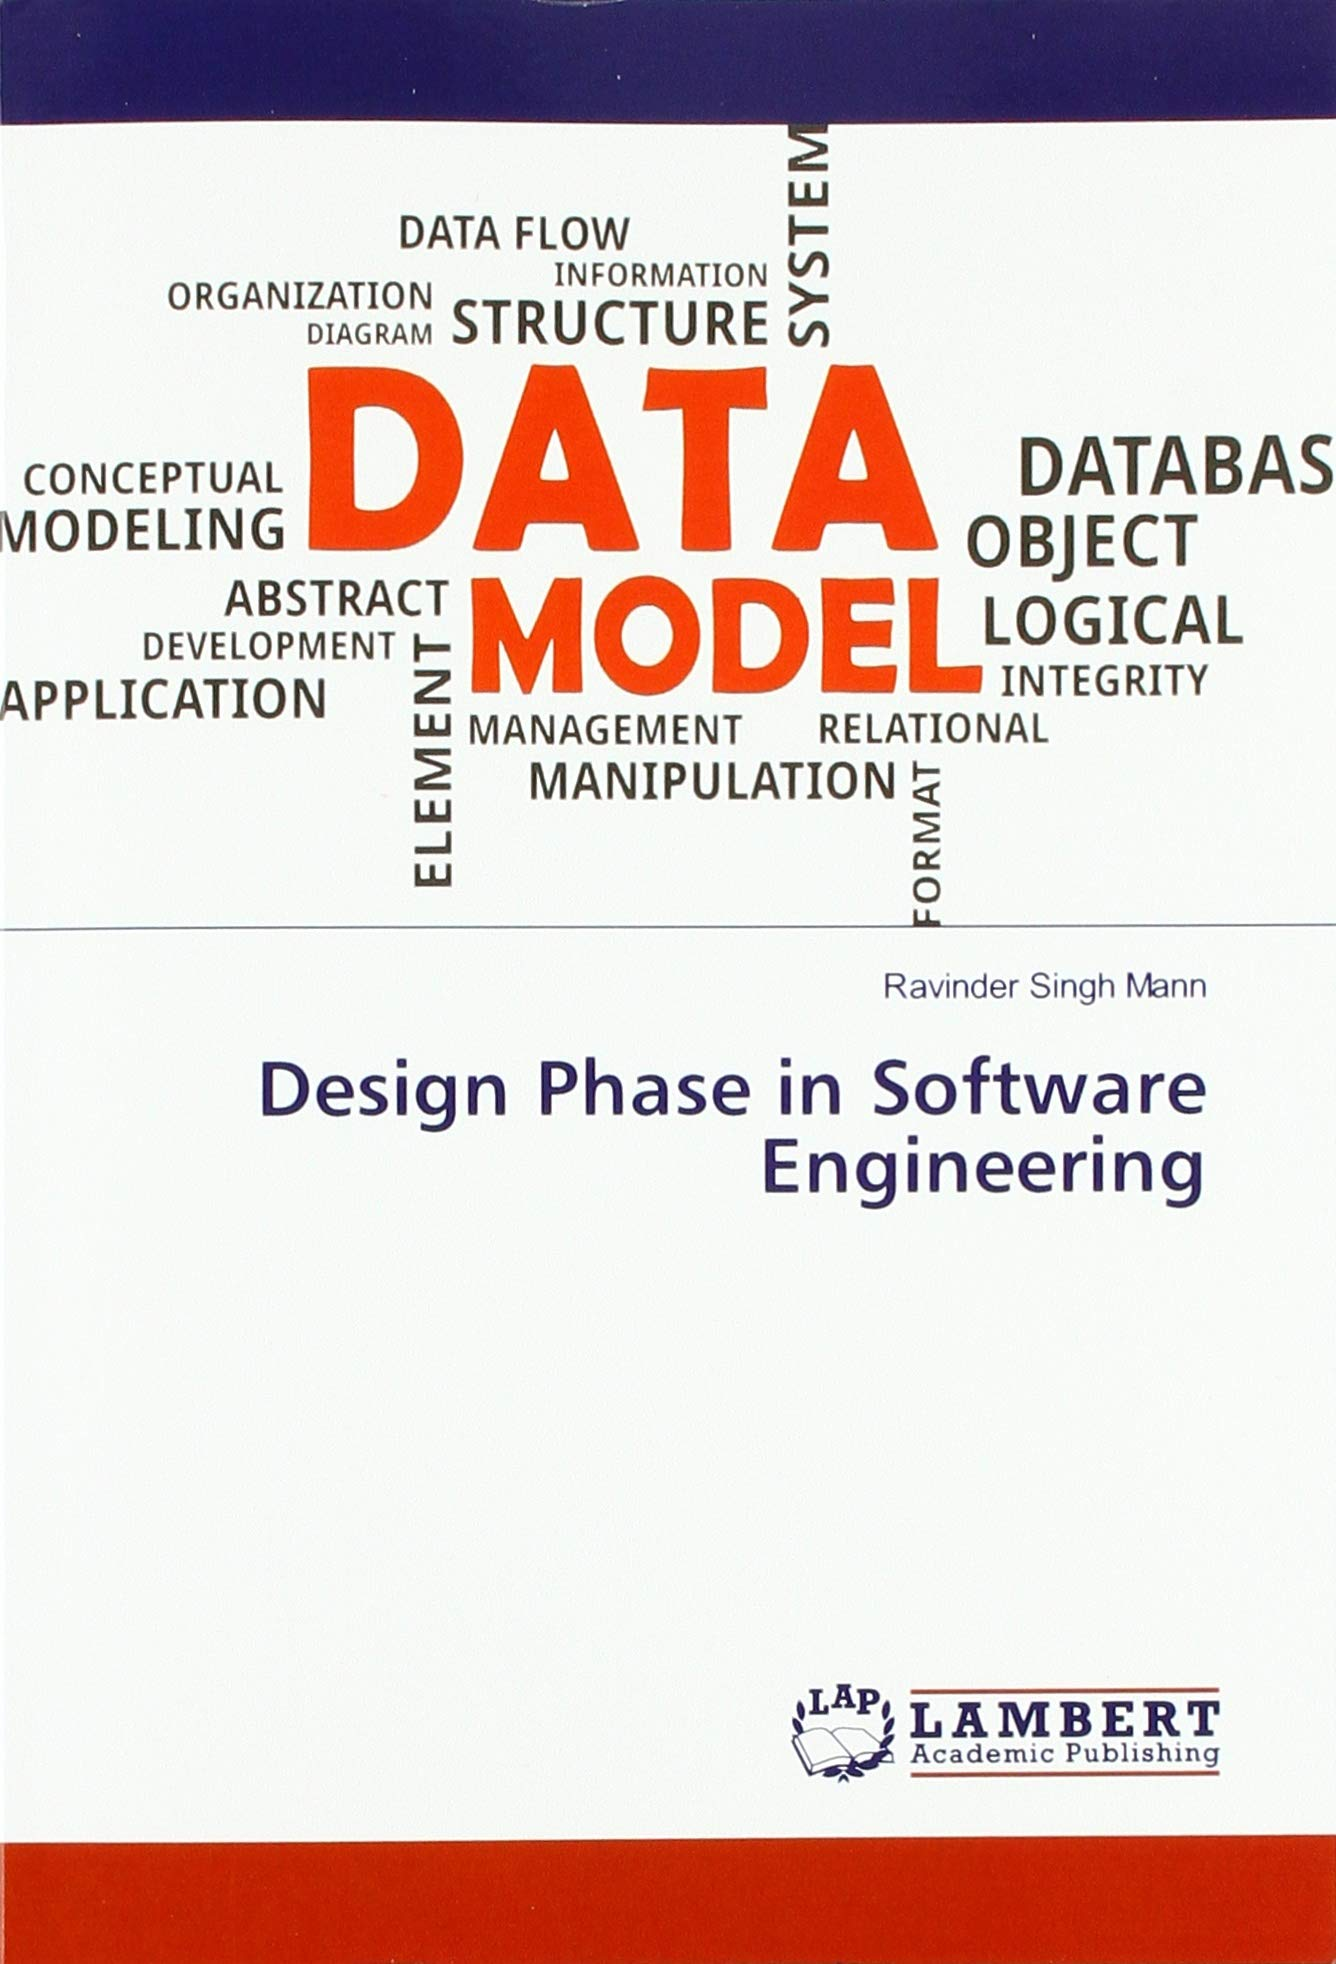 Design Phase In Software Engineering Mann Ravinder Singh 9786139983049 Amazon Com Books